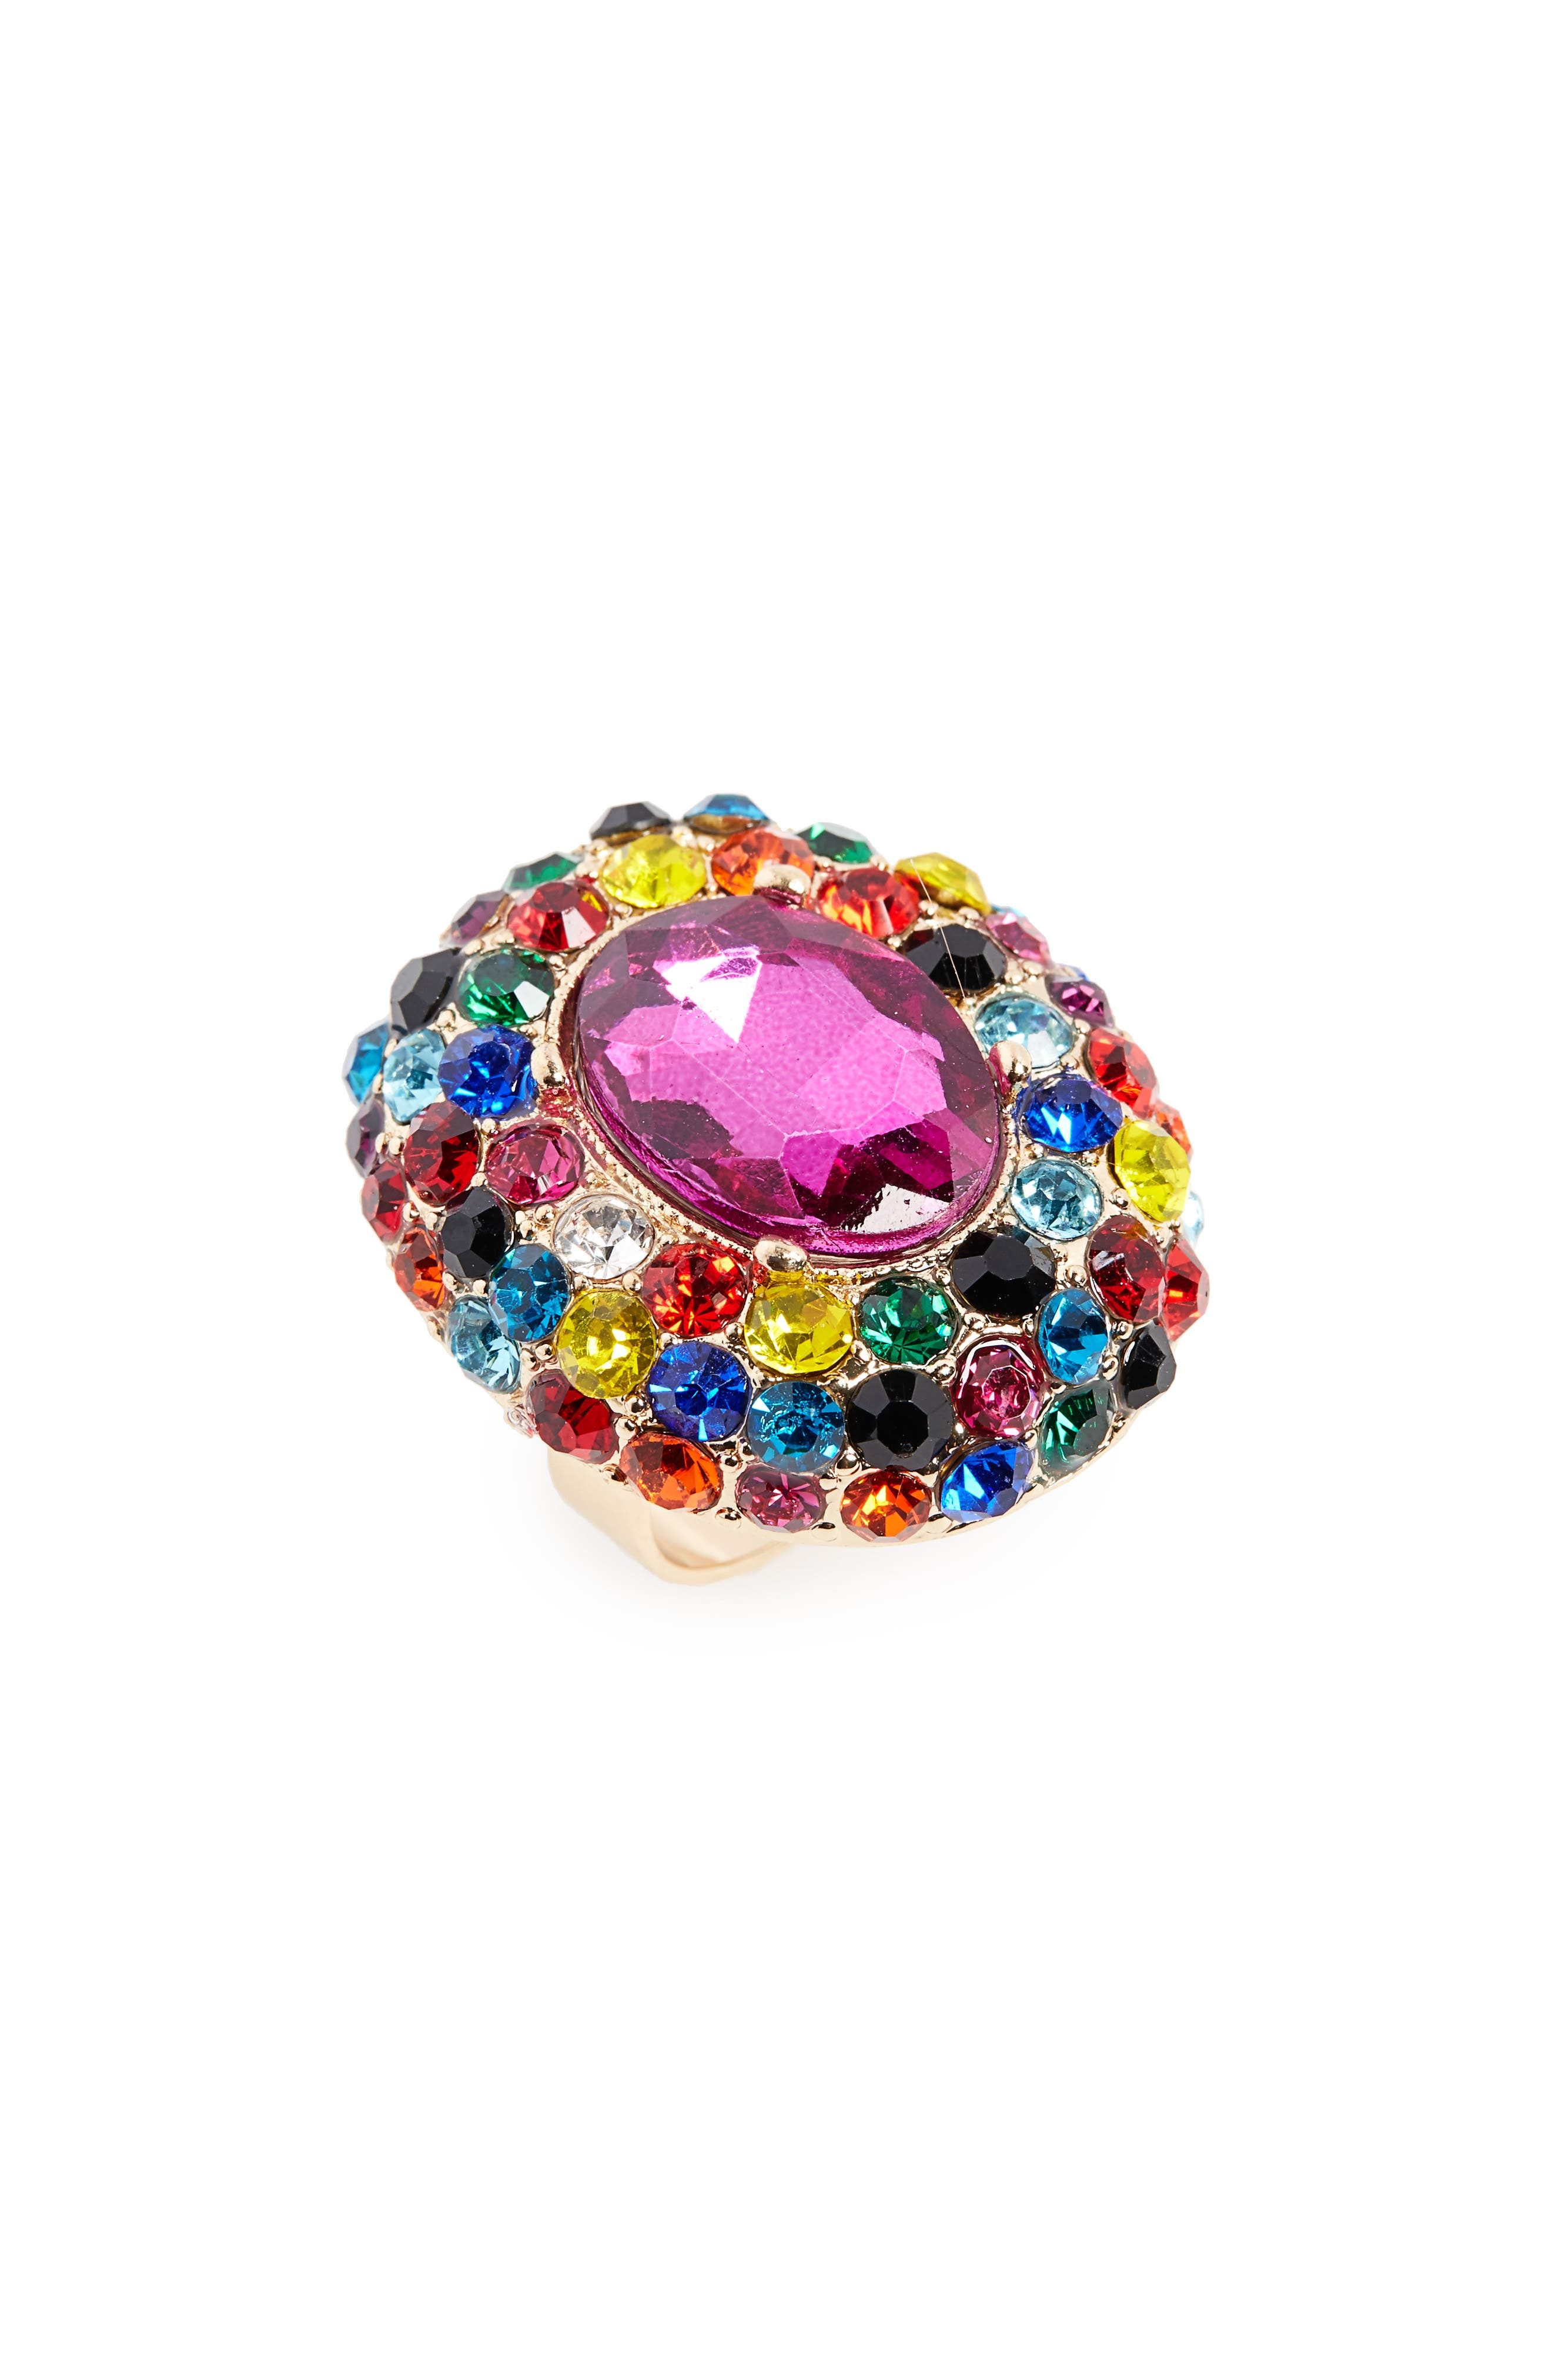 Crystal Adjustable Ring,                             Main thumbnail 1, color,                             Gold/ Multi